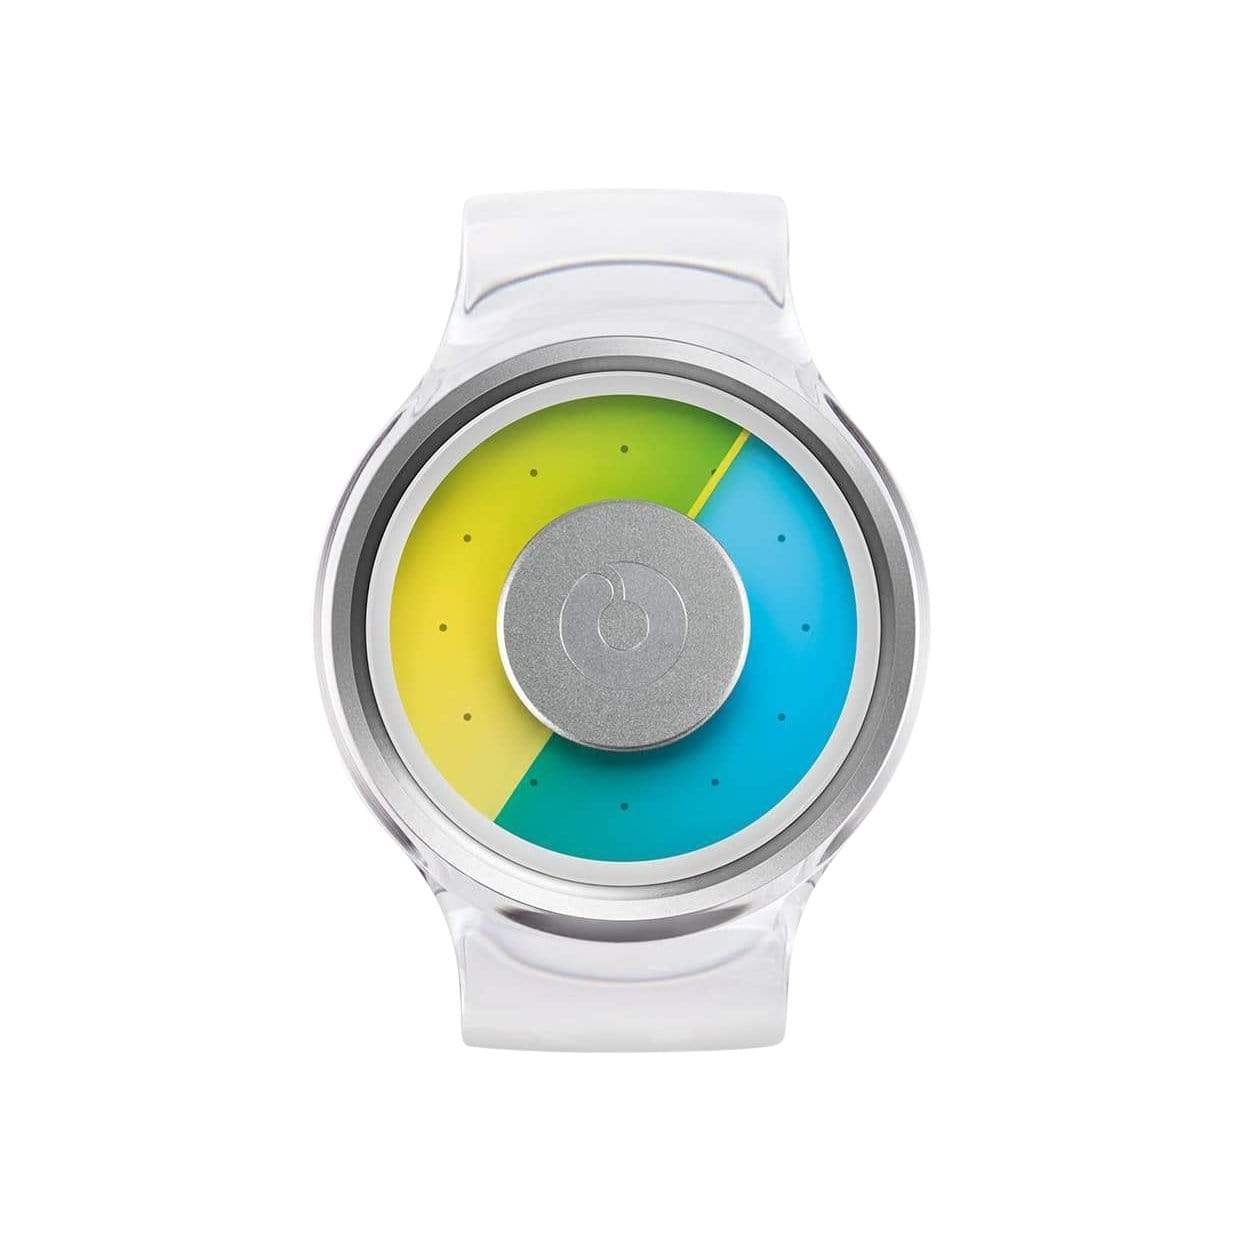 Proton Watch in Clear/Colored